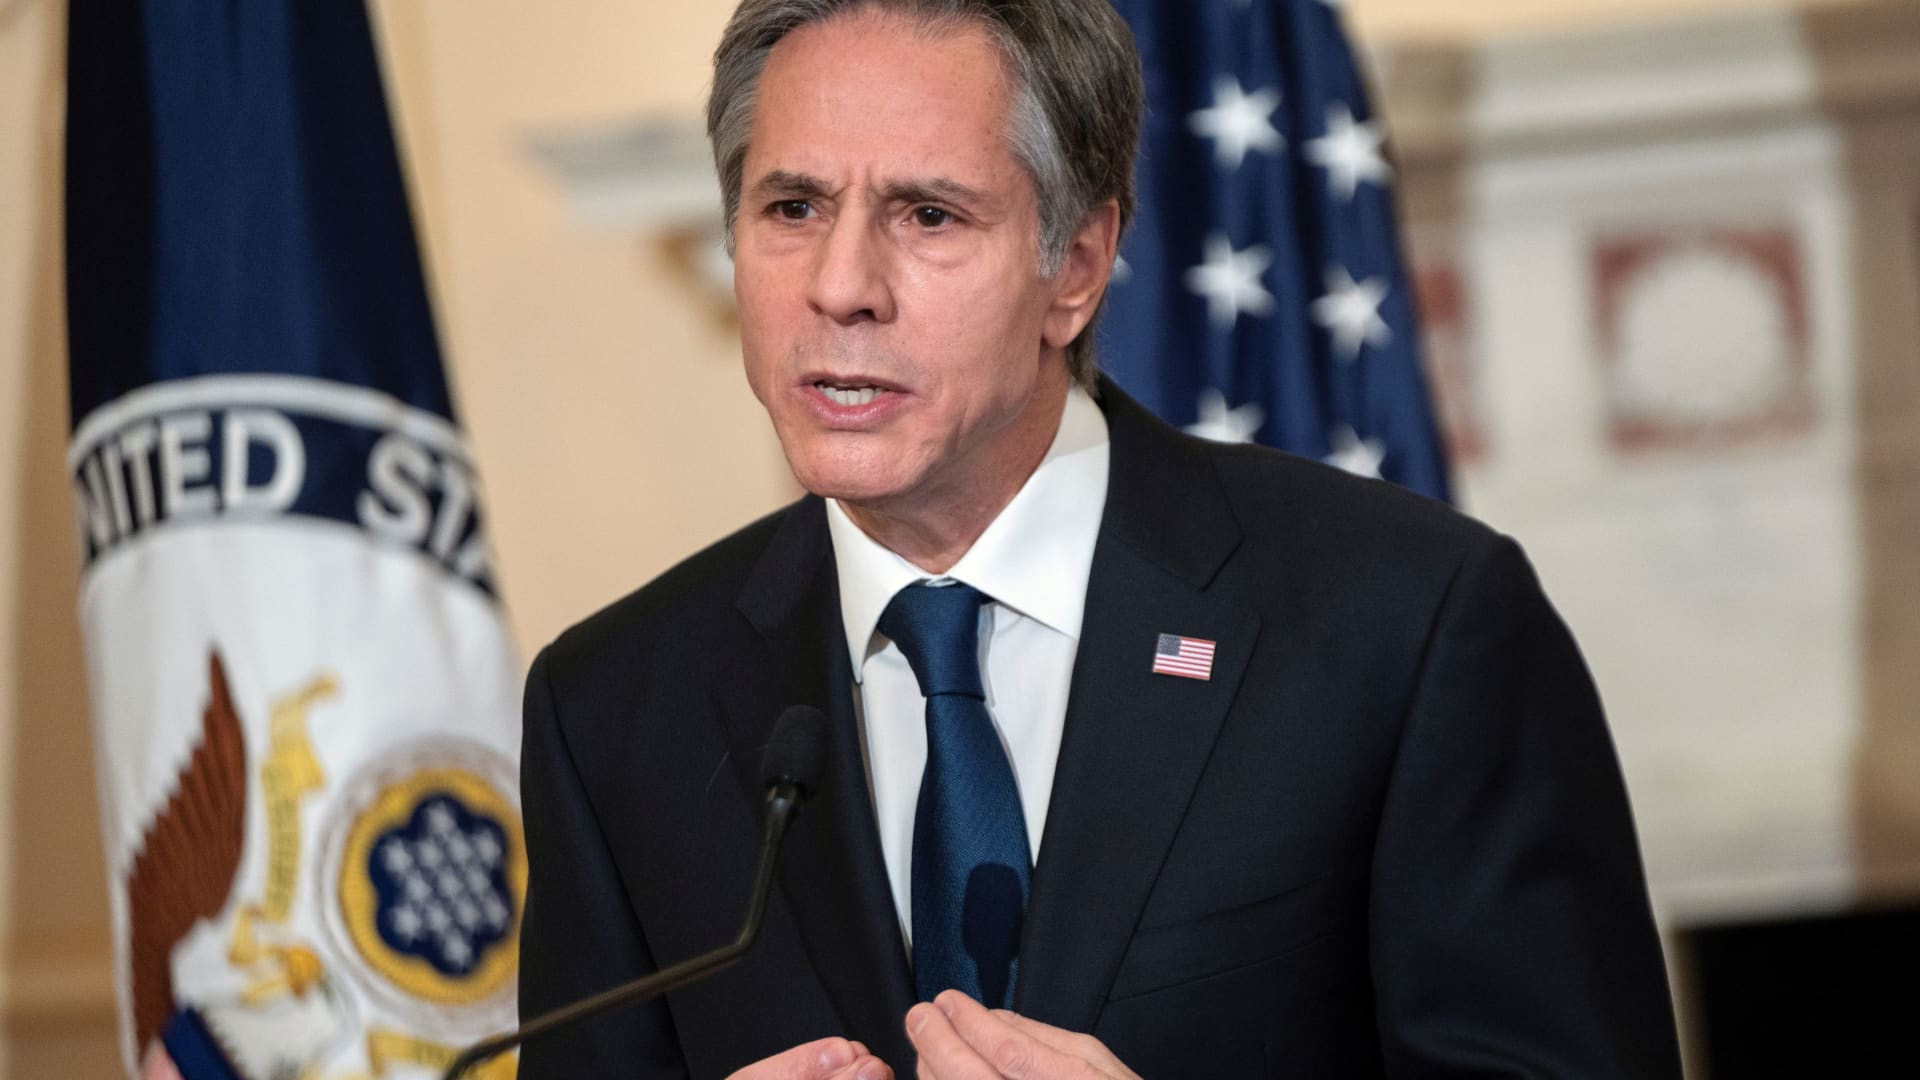 U.S. Secretary of State Antony Blinken delivers remarks about priorities for administration of U.S. President Joe Biden in the Ben Franklin room at the State Department in Washington, U.S. March 3, 2021.